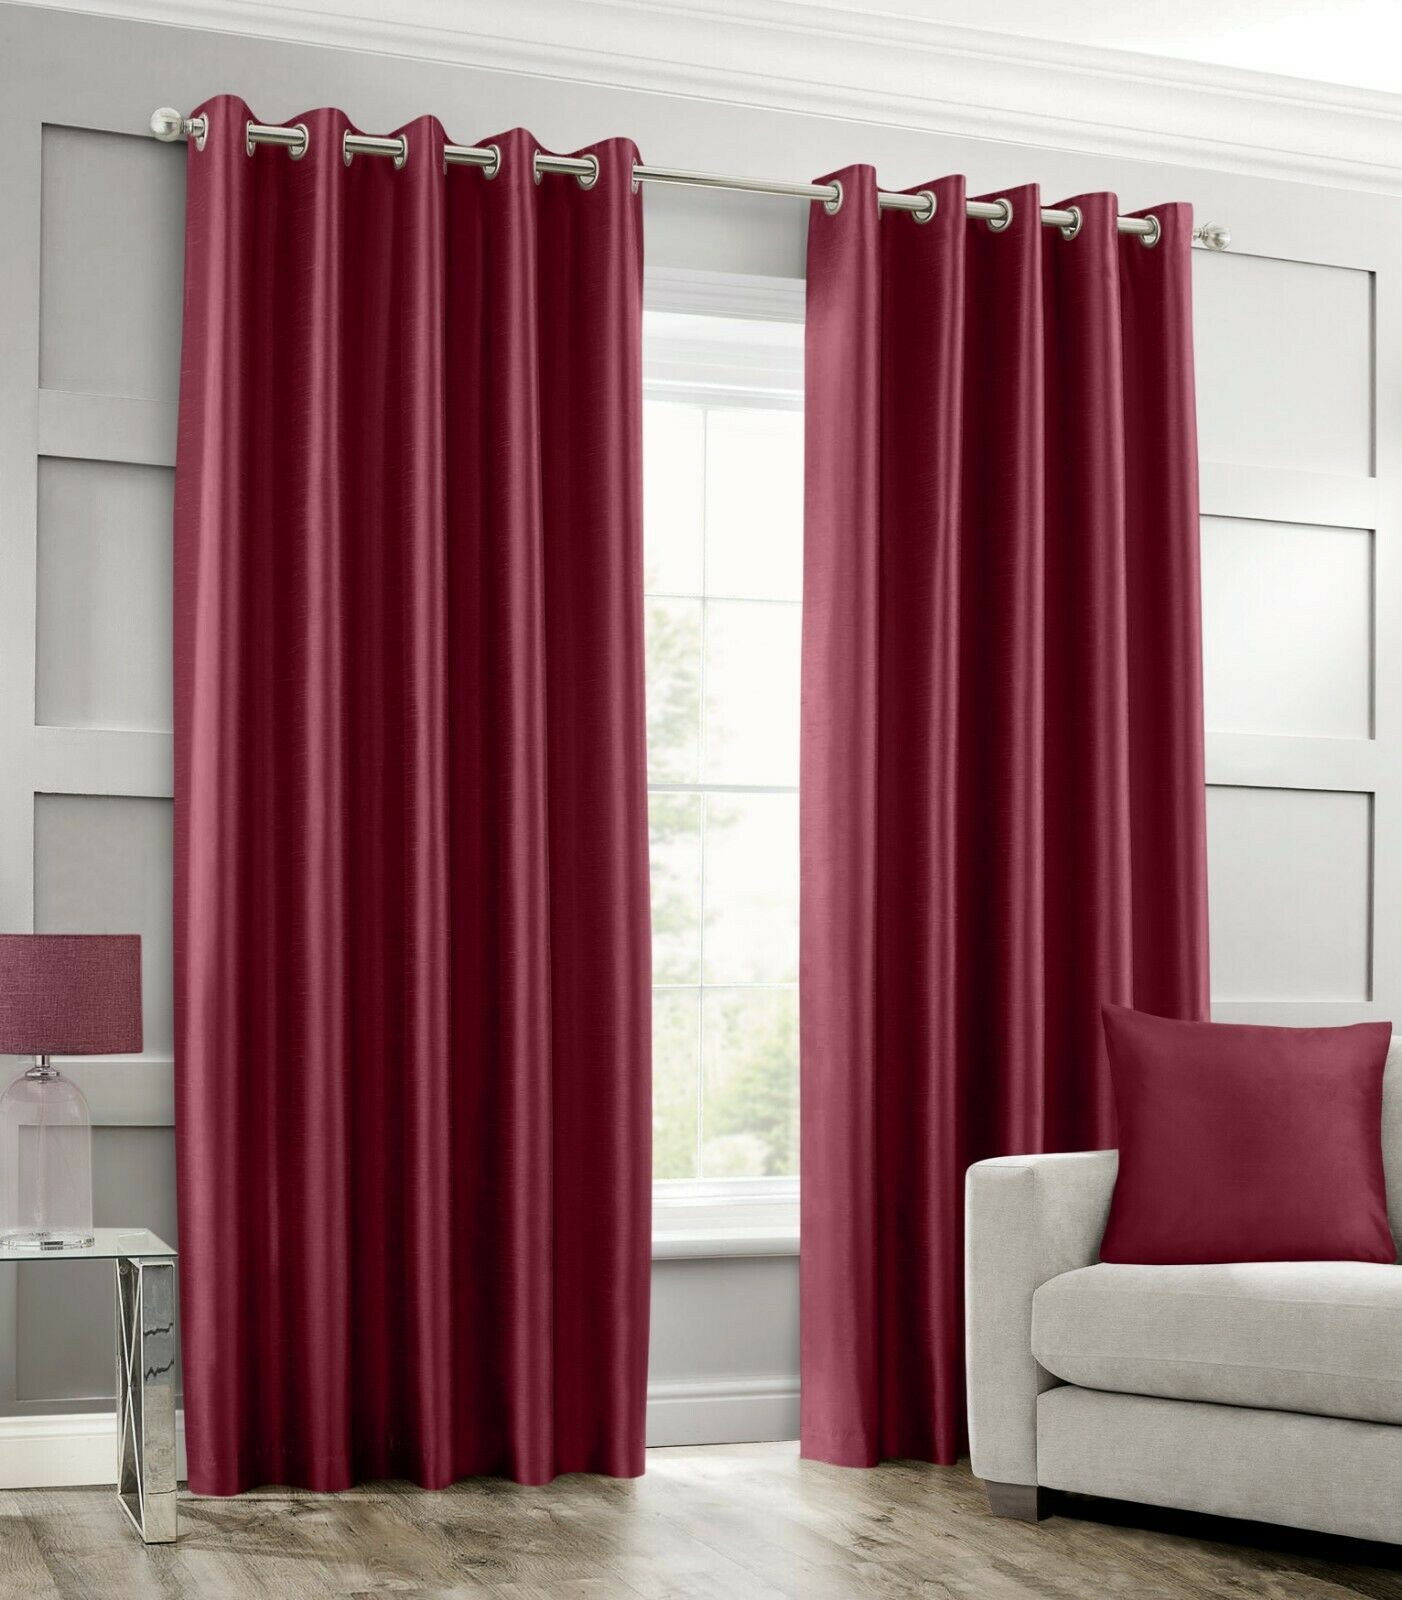 Stylish Ring Top Eyelet Lined Curtains Plain Faux Silk Burgundy Colour